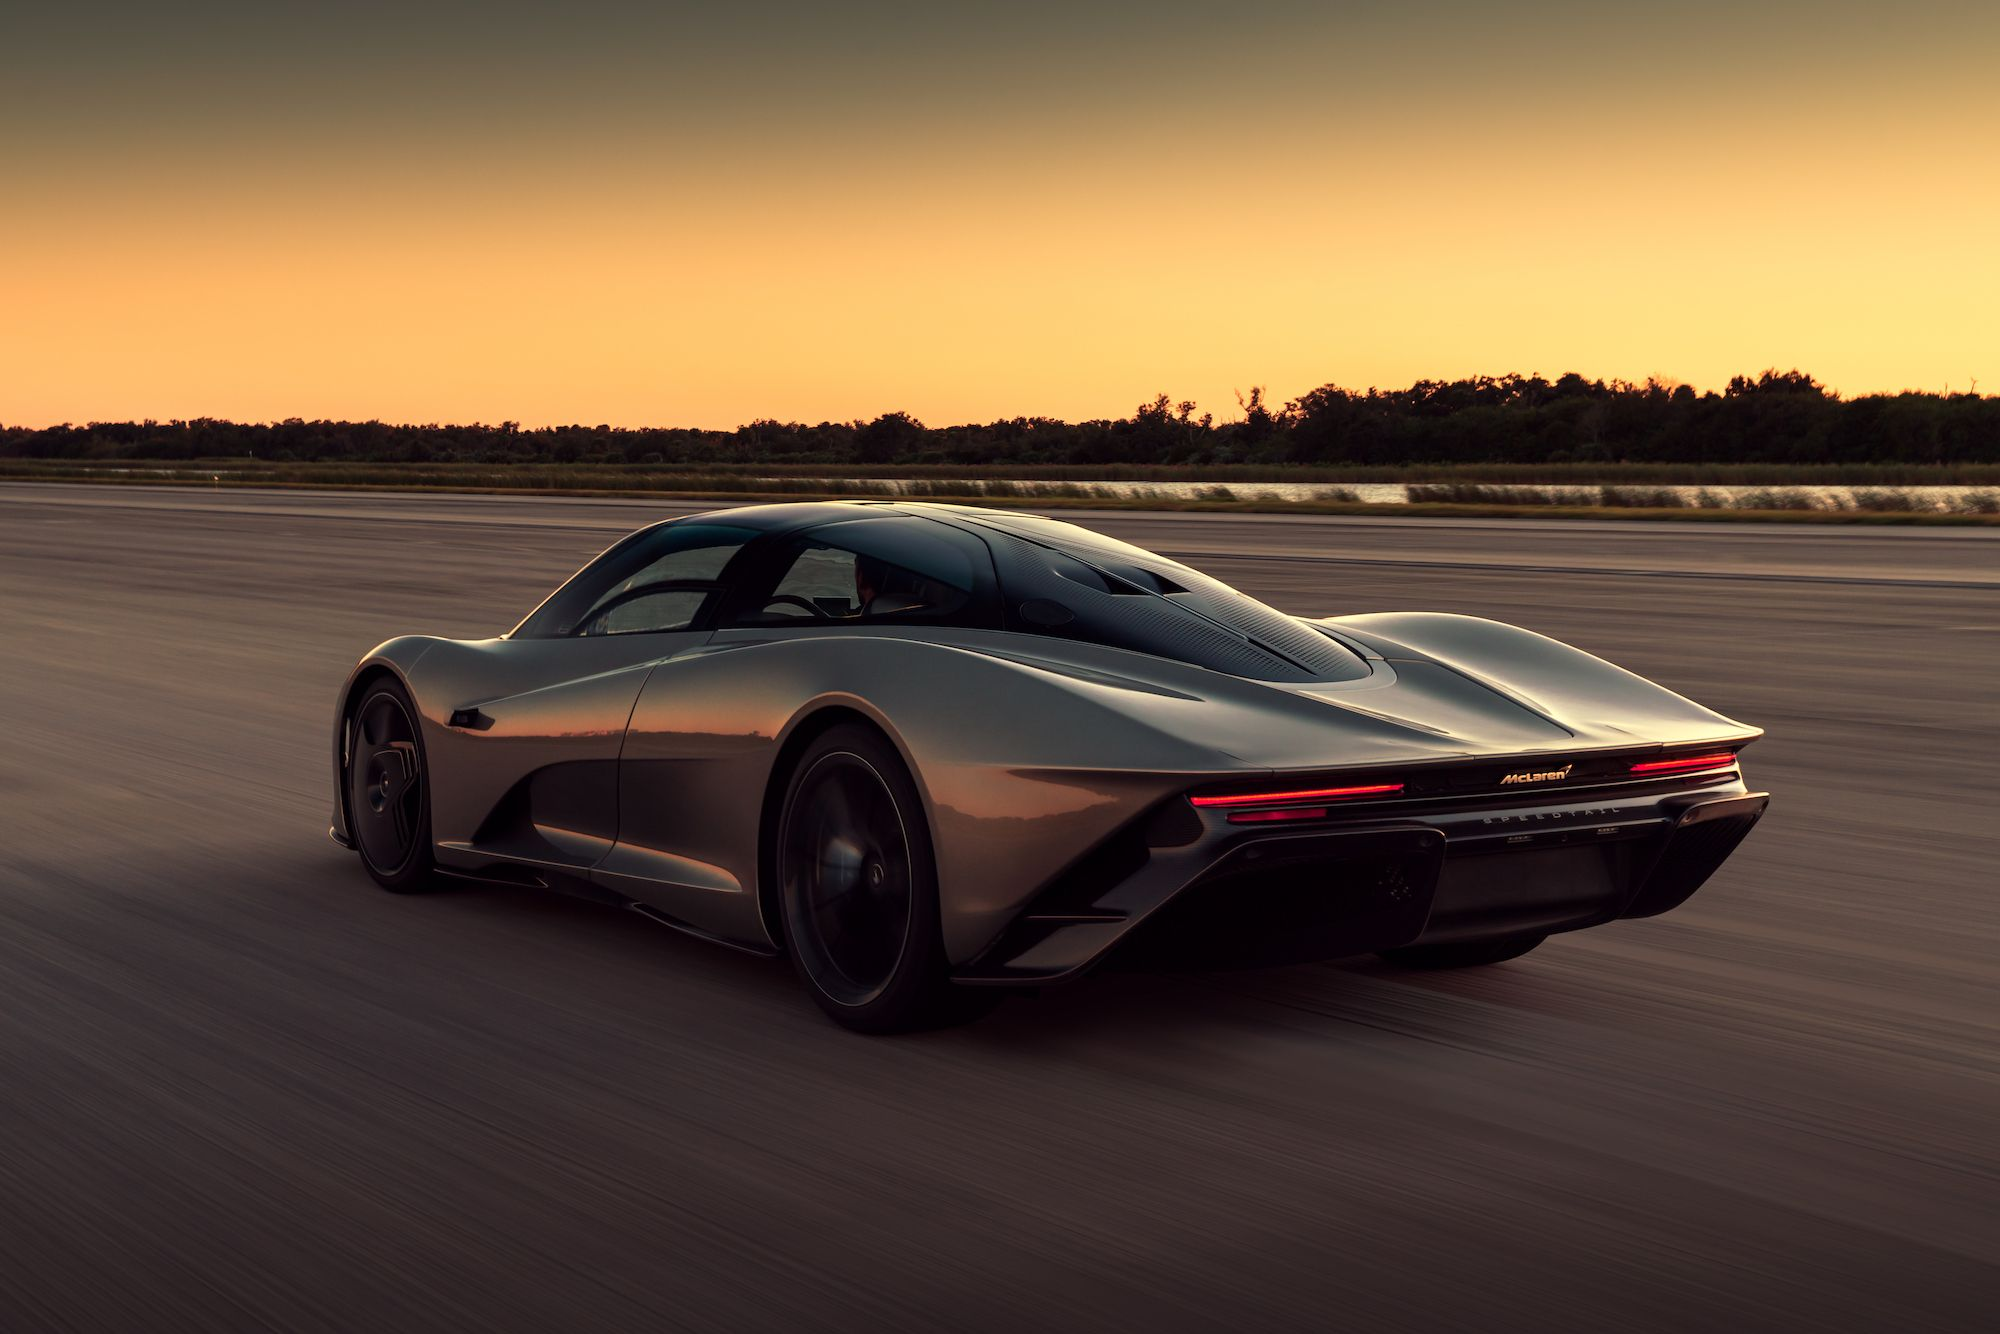 The McLaren Speedtail Hit 250 MPH More Than 30 Times in Testing at Kennedy Space Center